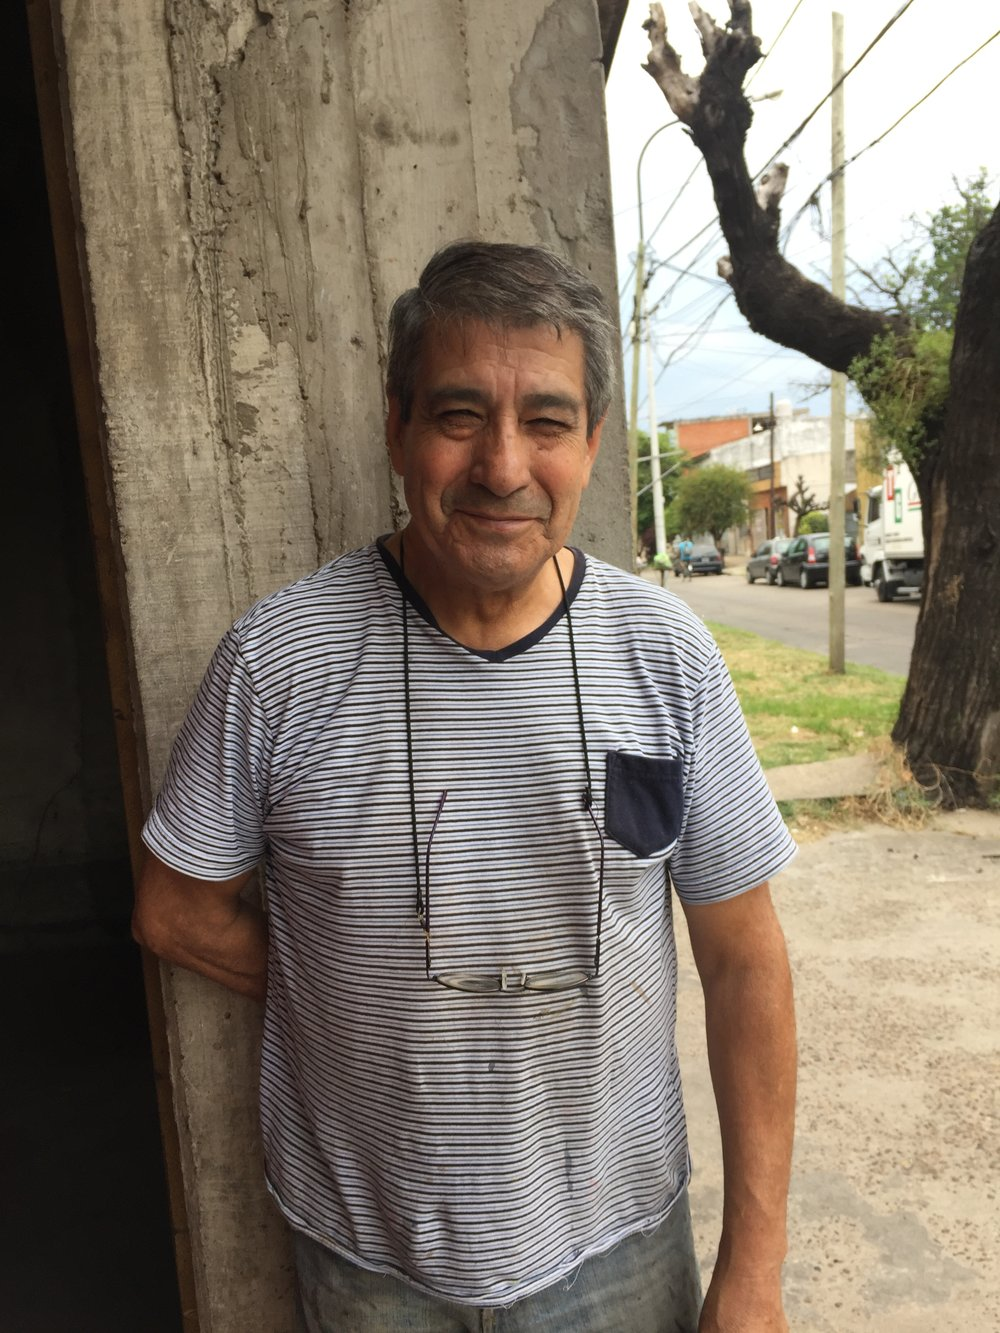 Meet Miguel  - This is the head shoemaker. Miguel was born and raised in the suburbs of Buenos Aires. He got into the shoe industry a kid, first running errands at a factory, then working his way up to becoming a shoemaker as a young man. He currently makes the majority of Zou Xou shoes out of his workshop which is about ten steps from his house in Ciudadela, Buenos Aires. Sometimes he makes the shoes from start finish, except for the stitching. When there is too much work for him to handle on his own, he calls a cutter and another shoemaker to help. He is a wiz at constructing the mules, but his favorite operation is polishing the rough edges of the soles on the sanding machine. He loves old-school Santana, goes out dancing every Saturday night without fail and just bought his first car--a shiny black Peugeot hatchback.